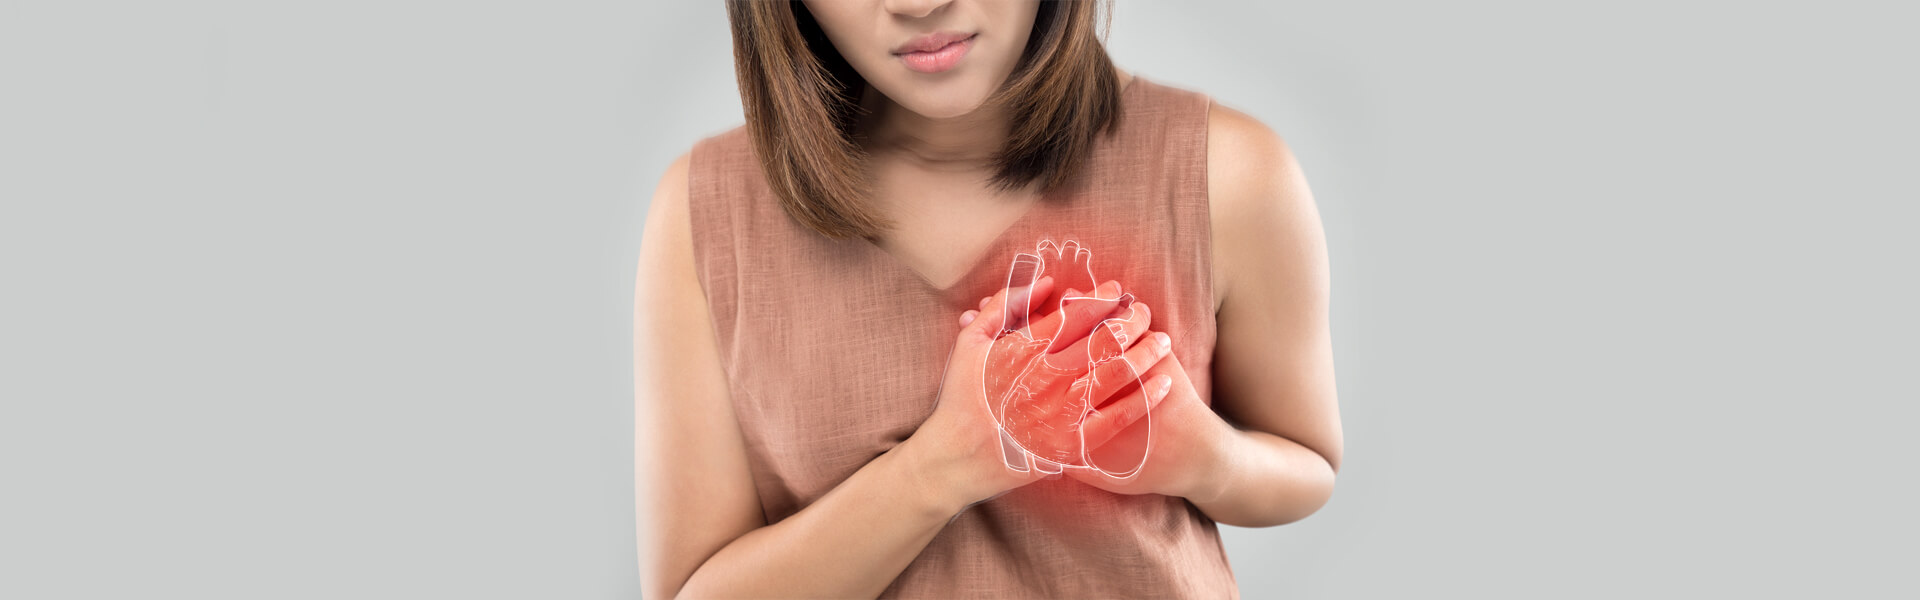 Heart Attack: An In-depth Look into the Symptoms in Women and Risk Factors